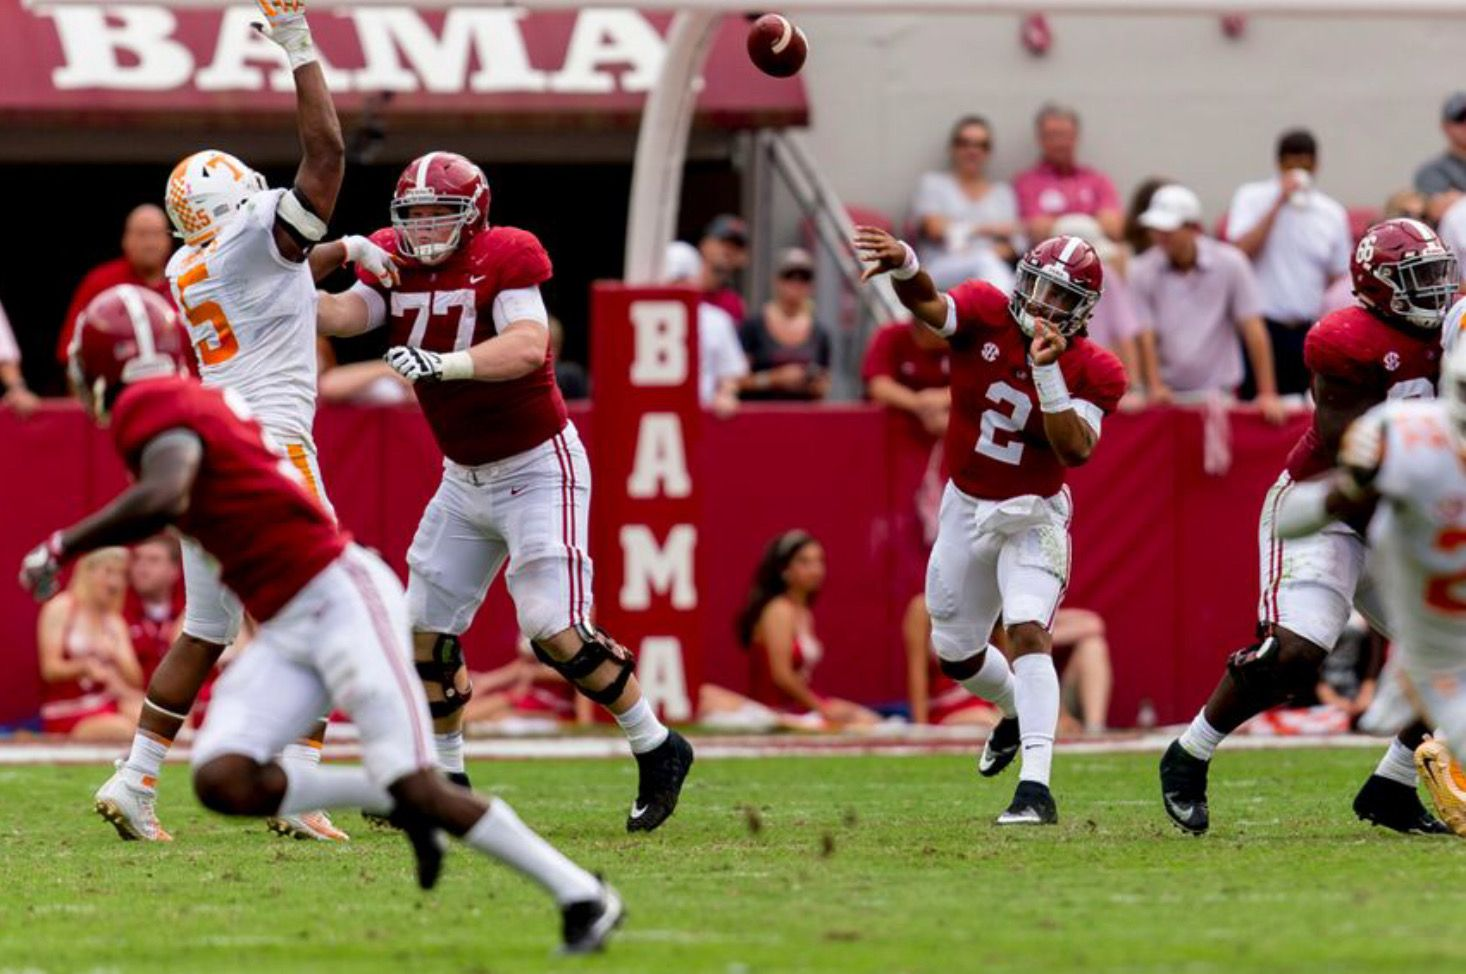 Alabama Quarterback Jalen Hurts 2 Throws To Alabama Wide Receiver Calvin Ridley 3 During The First Half Of The A Alabama Vs Tennessee Game Alabama Football